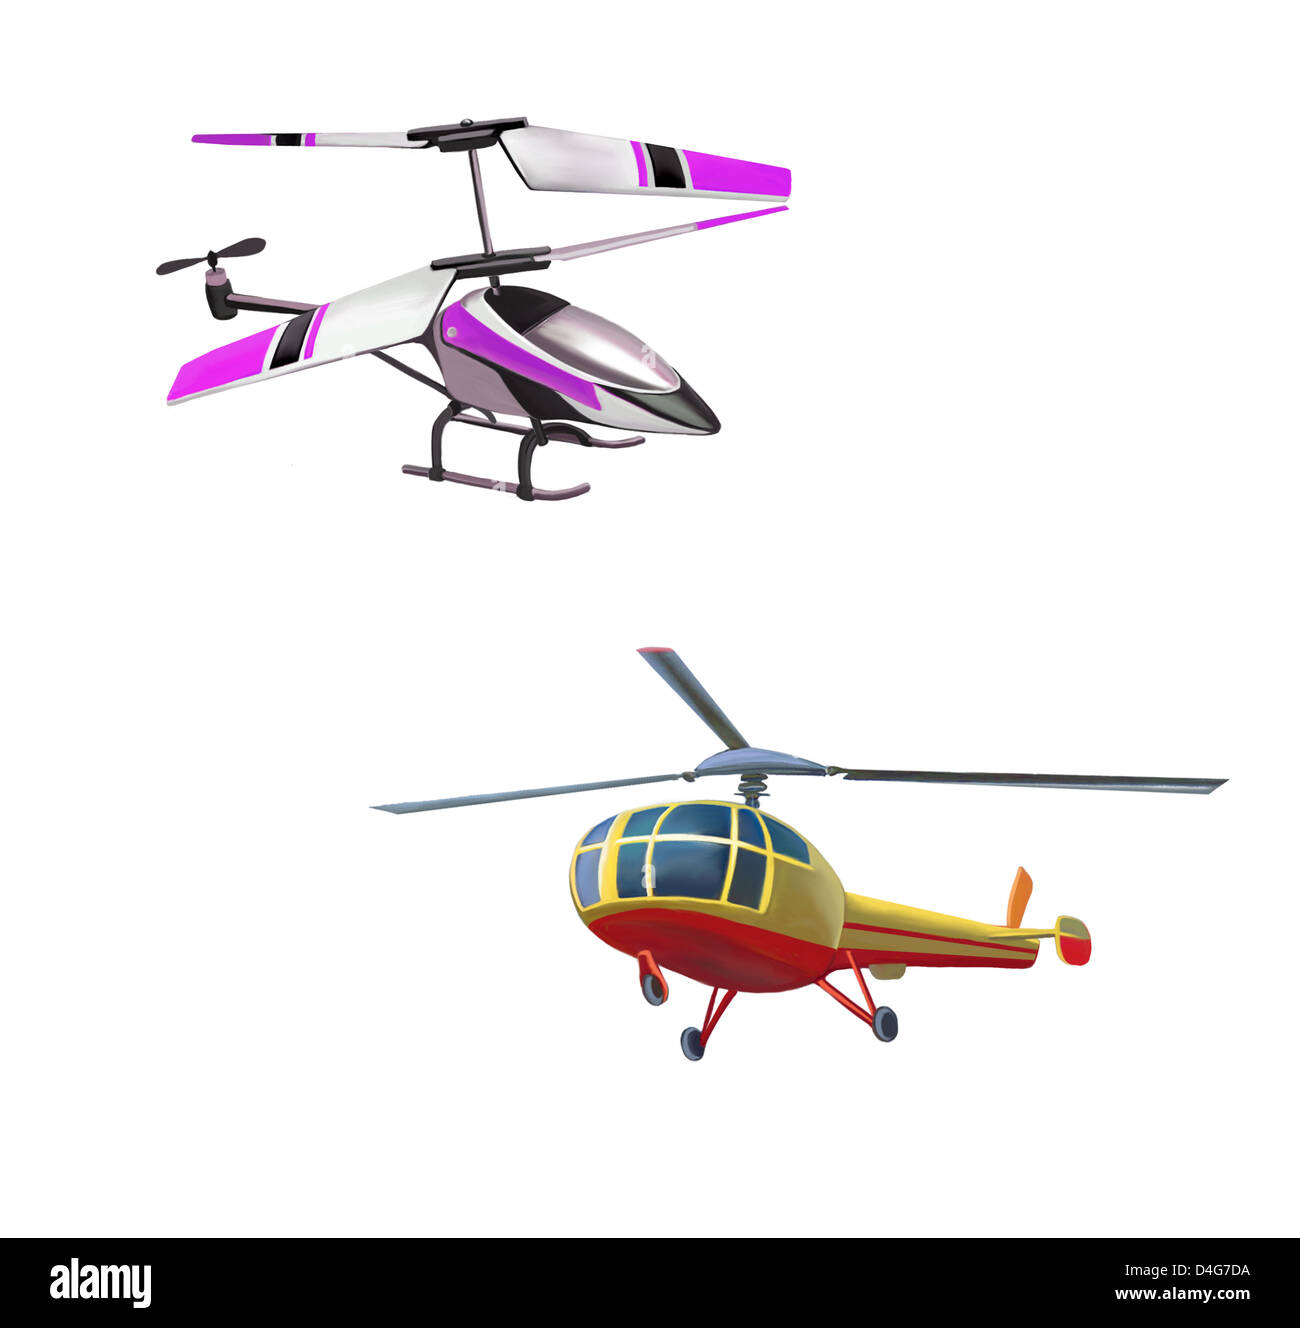 Helicopter toy model at flight - Stock Image